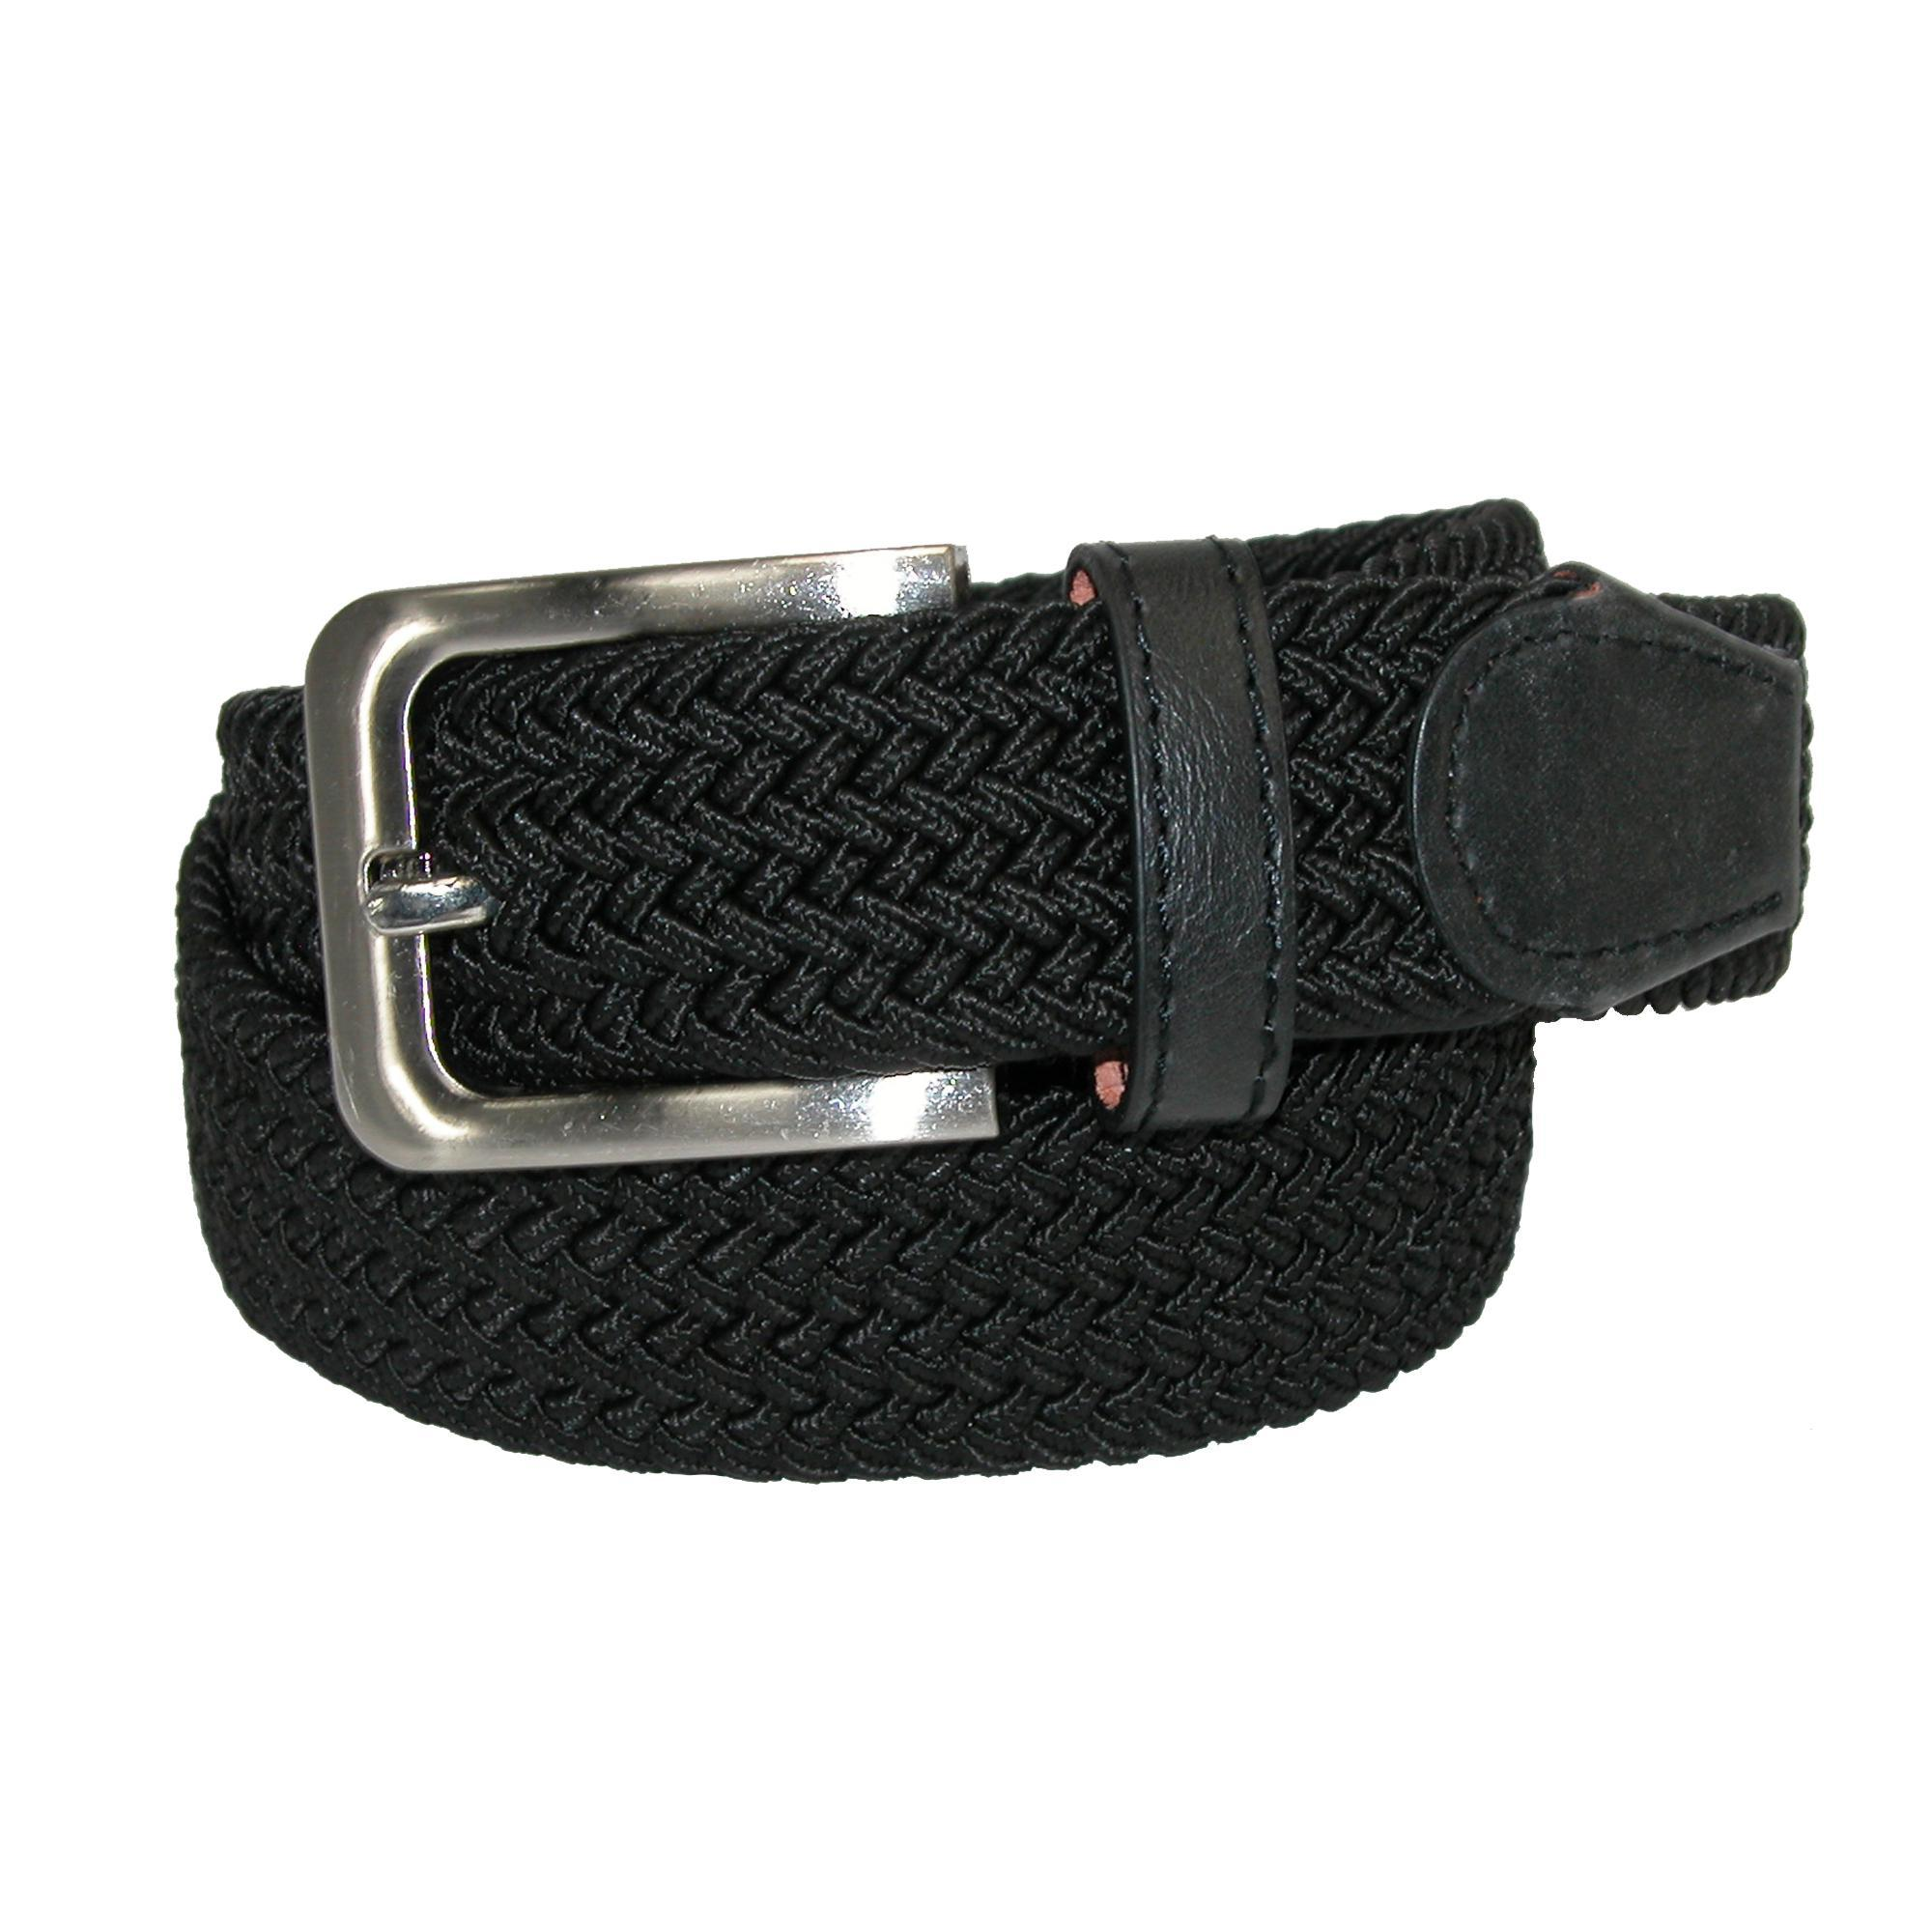 Ctm Mens Leather 1 3/8 Inch Western Belt With Removable Buckle